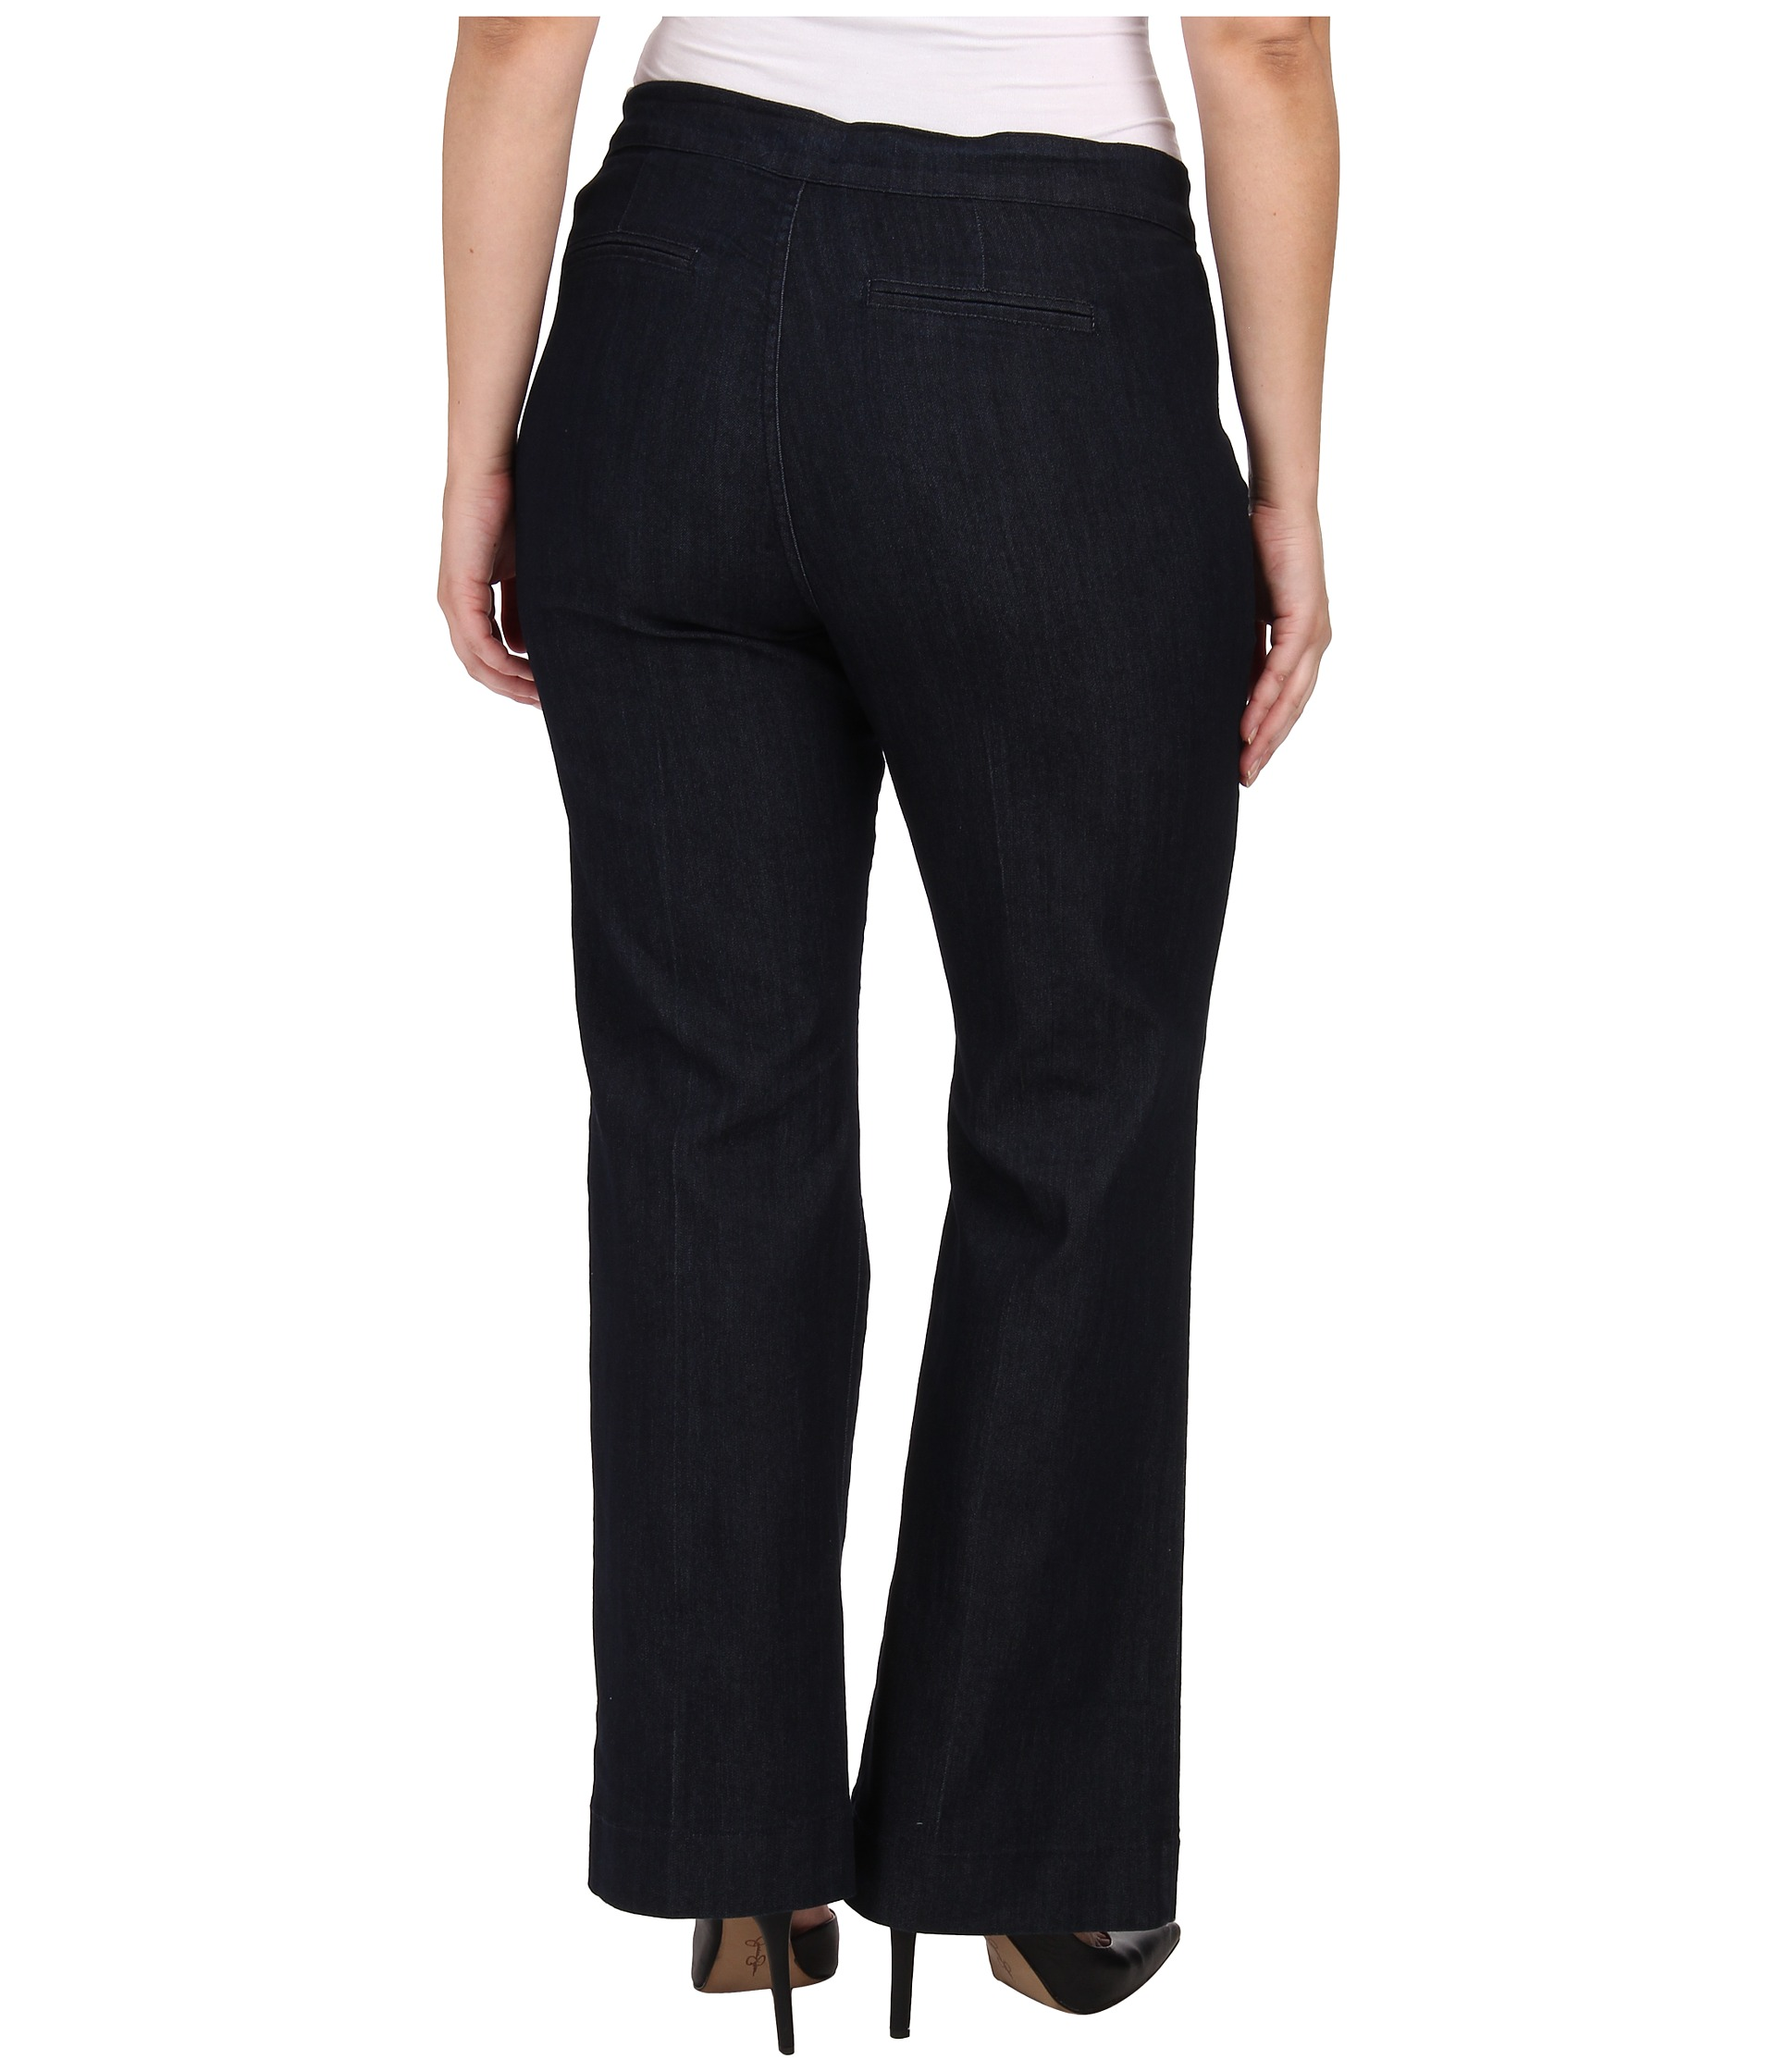 plus size jeans & trousers Stock up on essential plus size jeans and trousers in flattering styles and shapes. Printed trousers, smart office-ready styles and stretch leggings are ideal for an for your autumn/winter wardrobe.